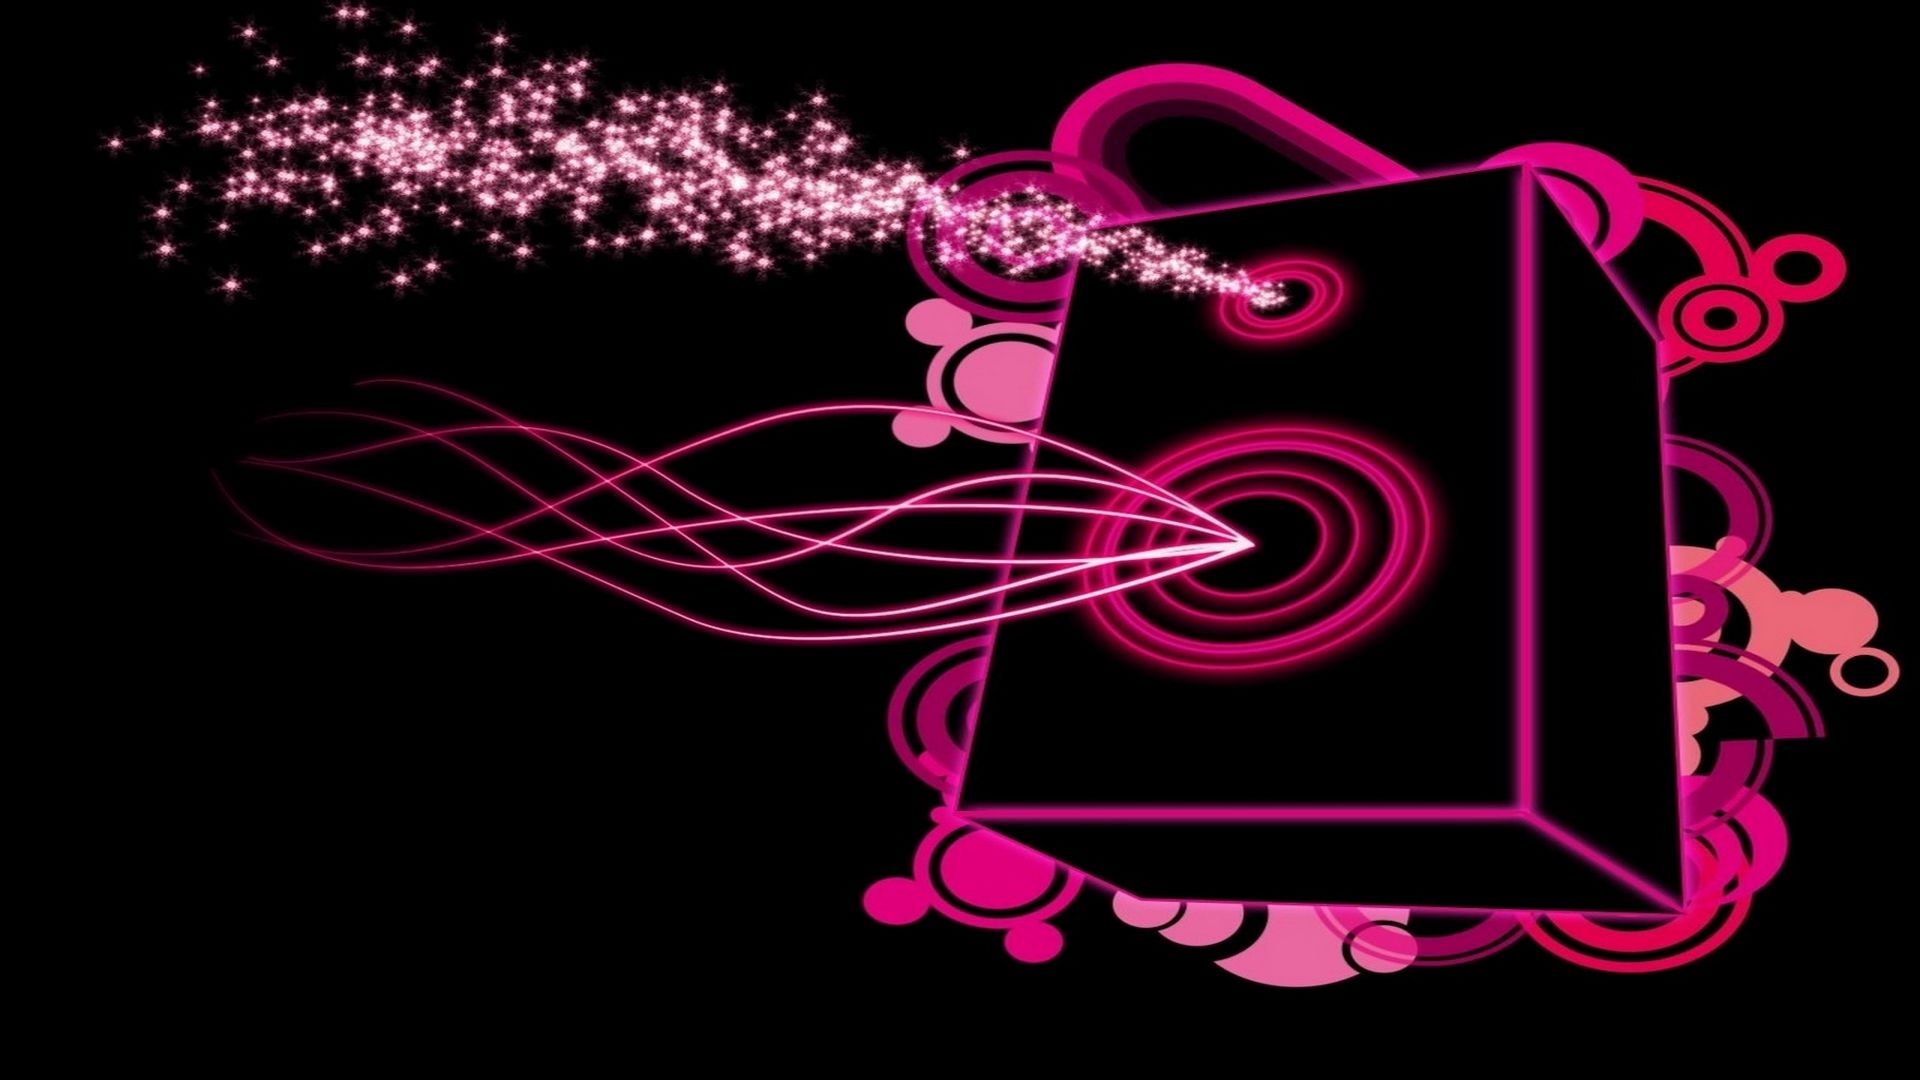 Pianosoftware Abstract Music Wallpapers Pink And Black Wallpaper Music Backgrounds Wallpaper